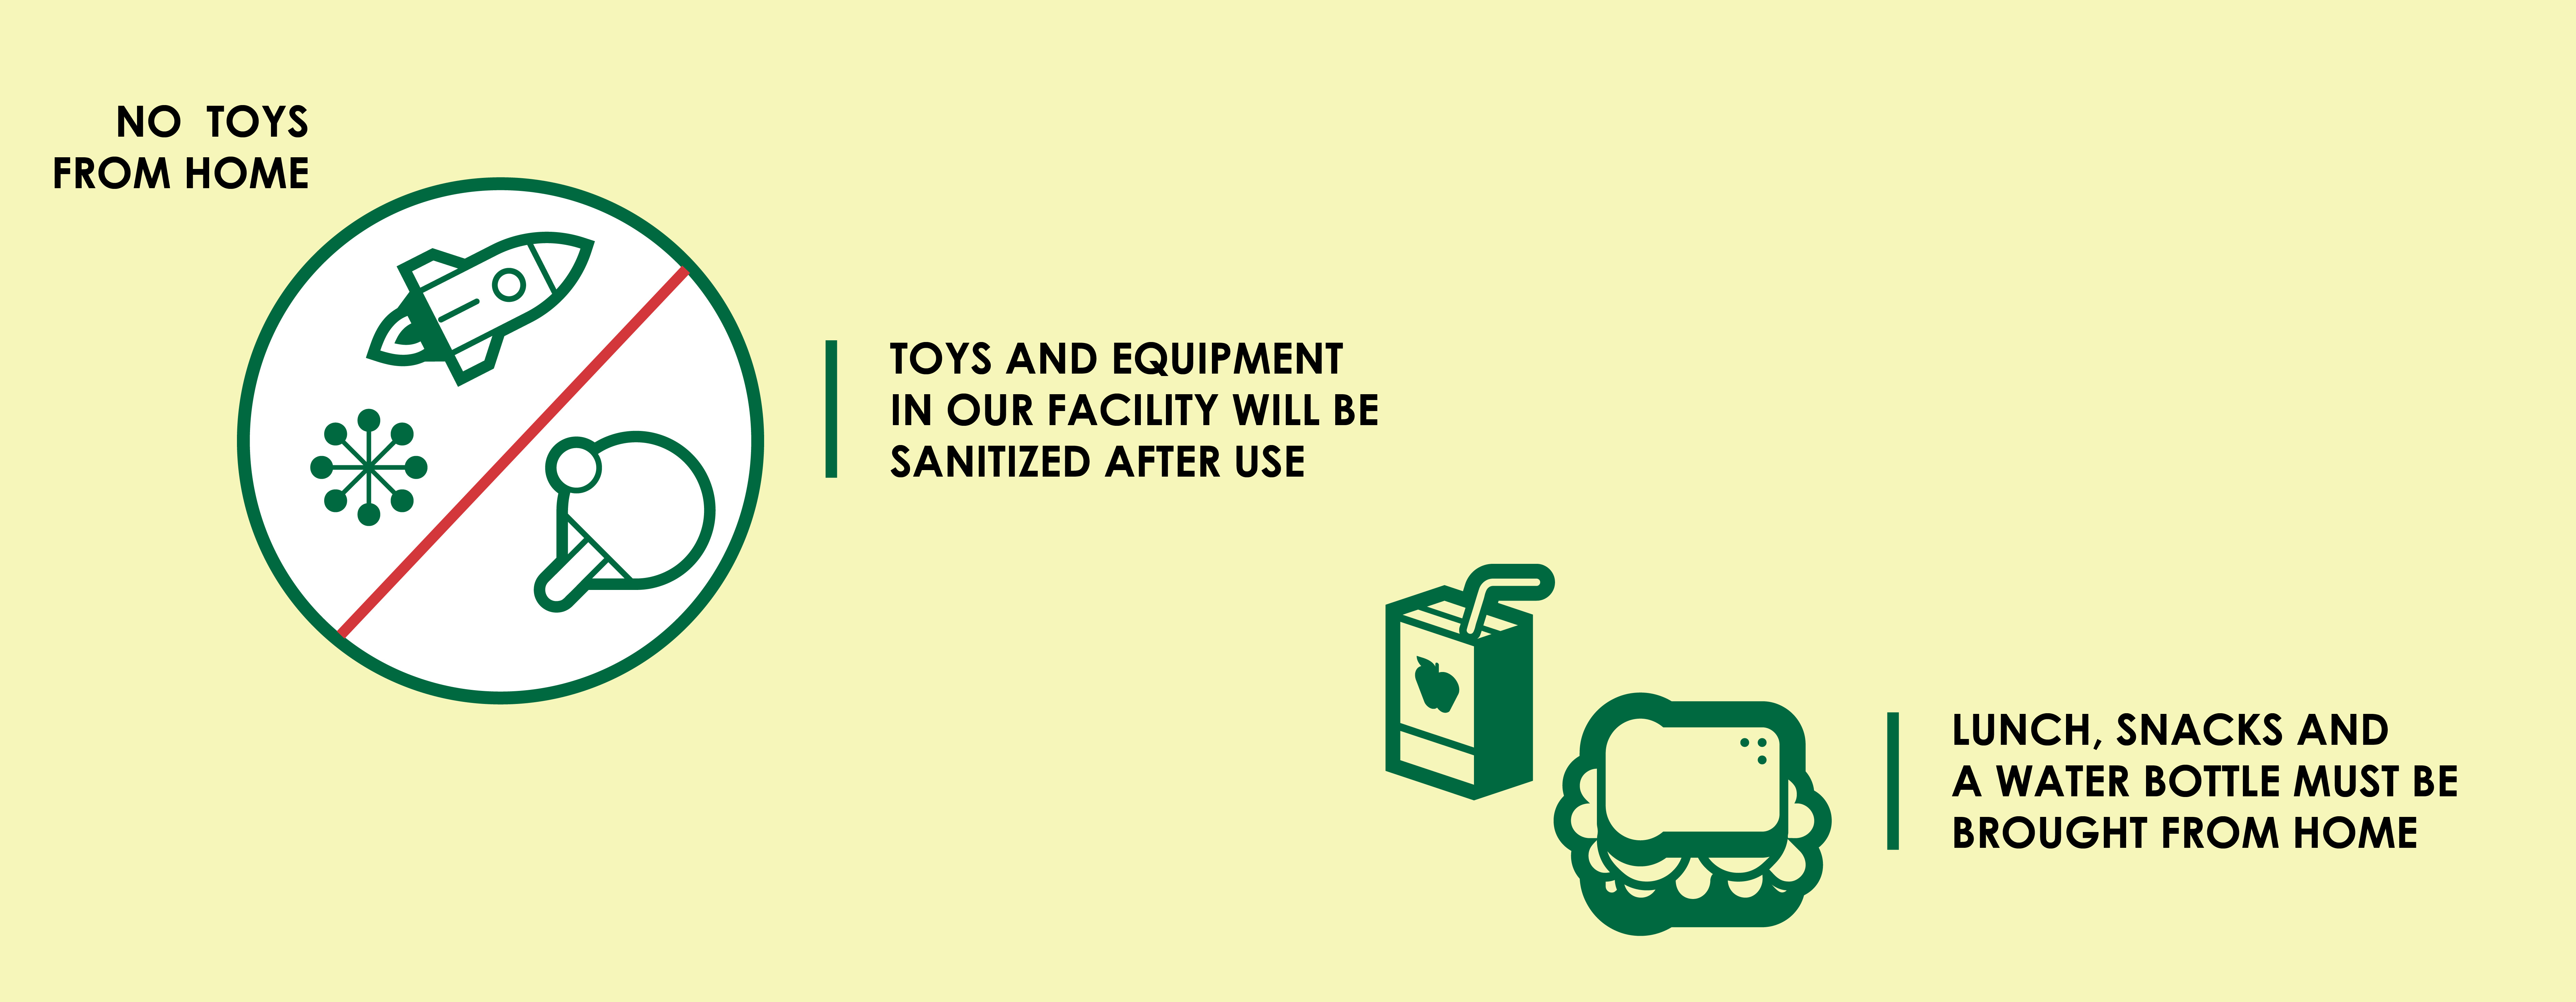 All toys and equipment will be sanitized after use. Lunch, snacks and water bottle must be brought from home.